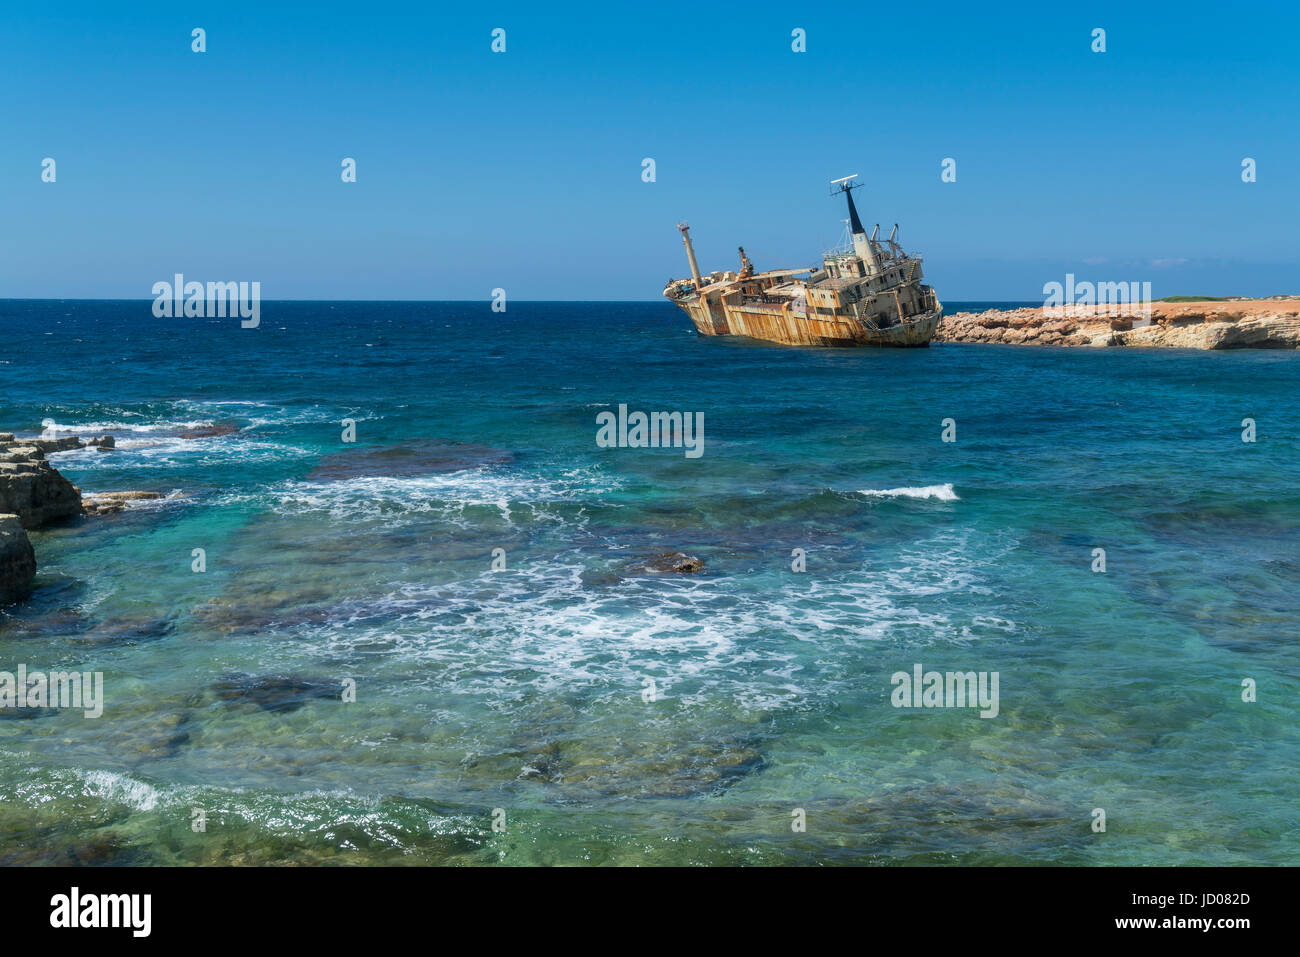 Wreck of Edro III, Sea Caves, near Coral Bay, Paphos, Pafos, Cyprus - Stock Image